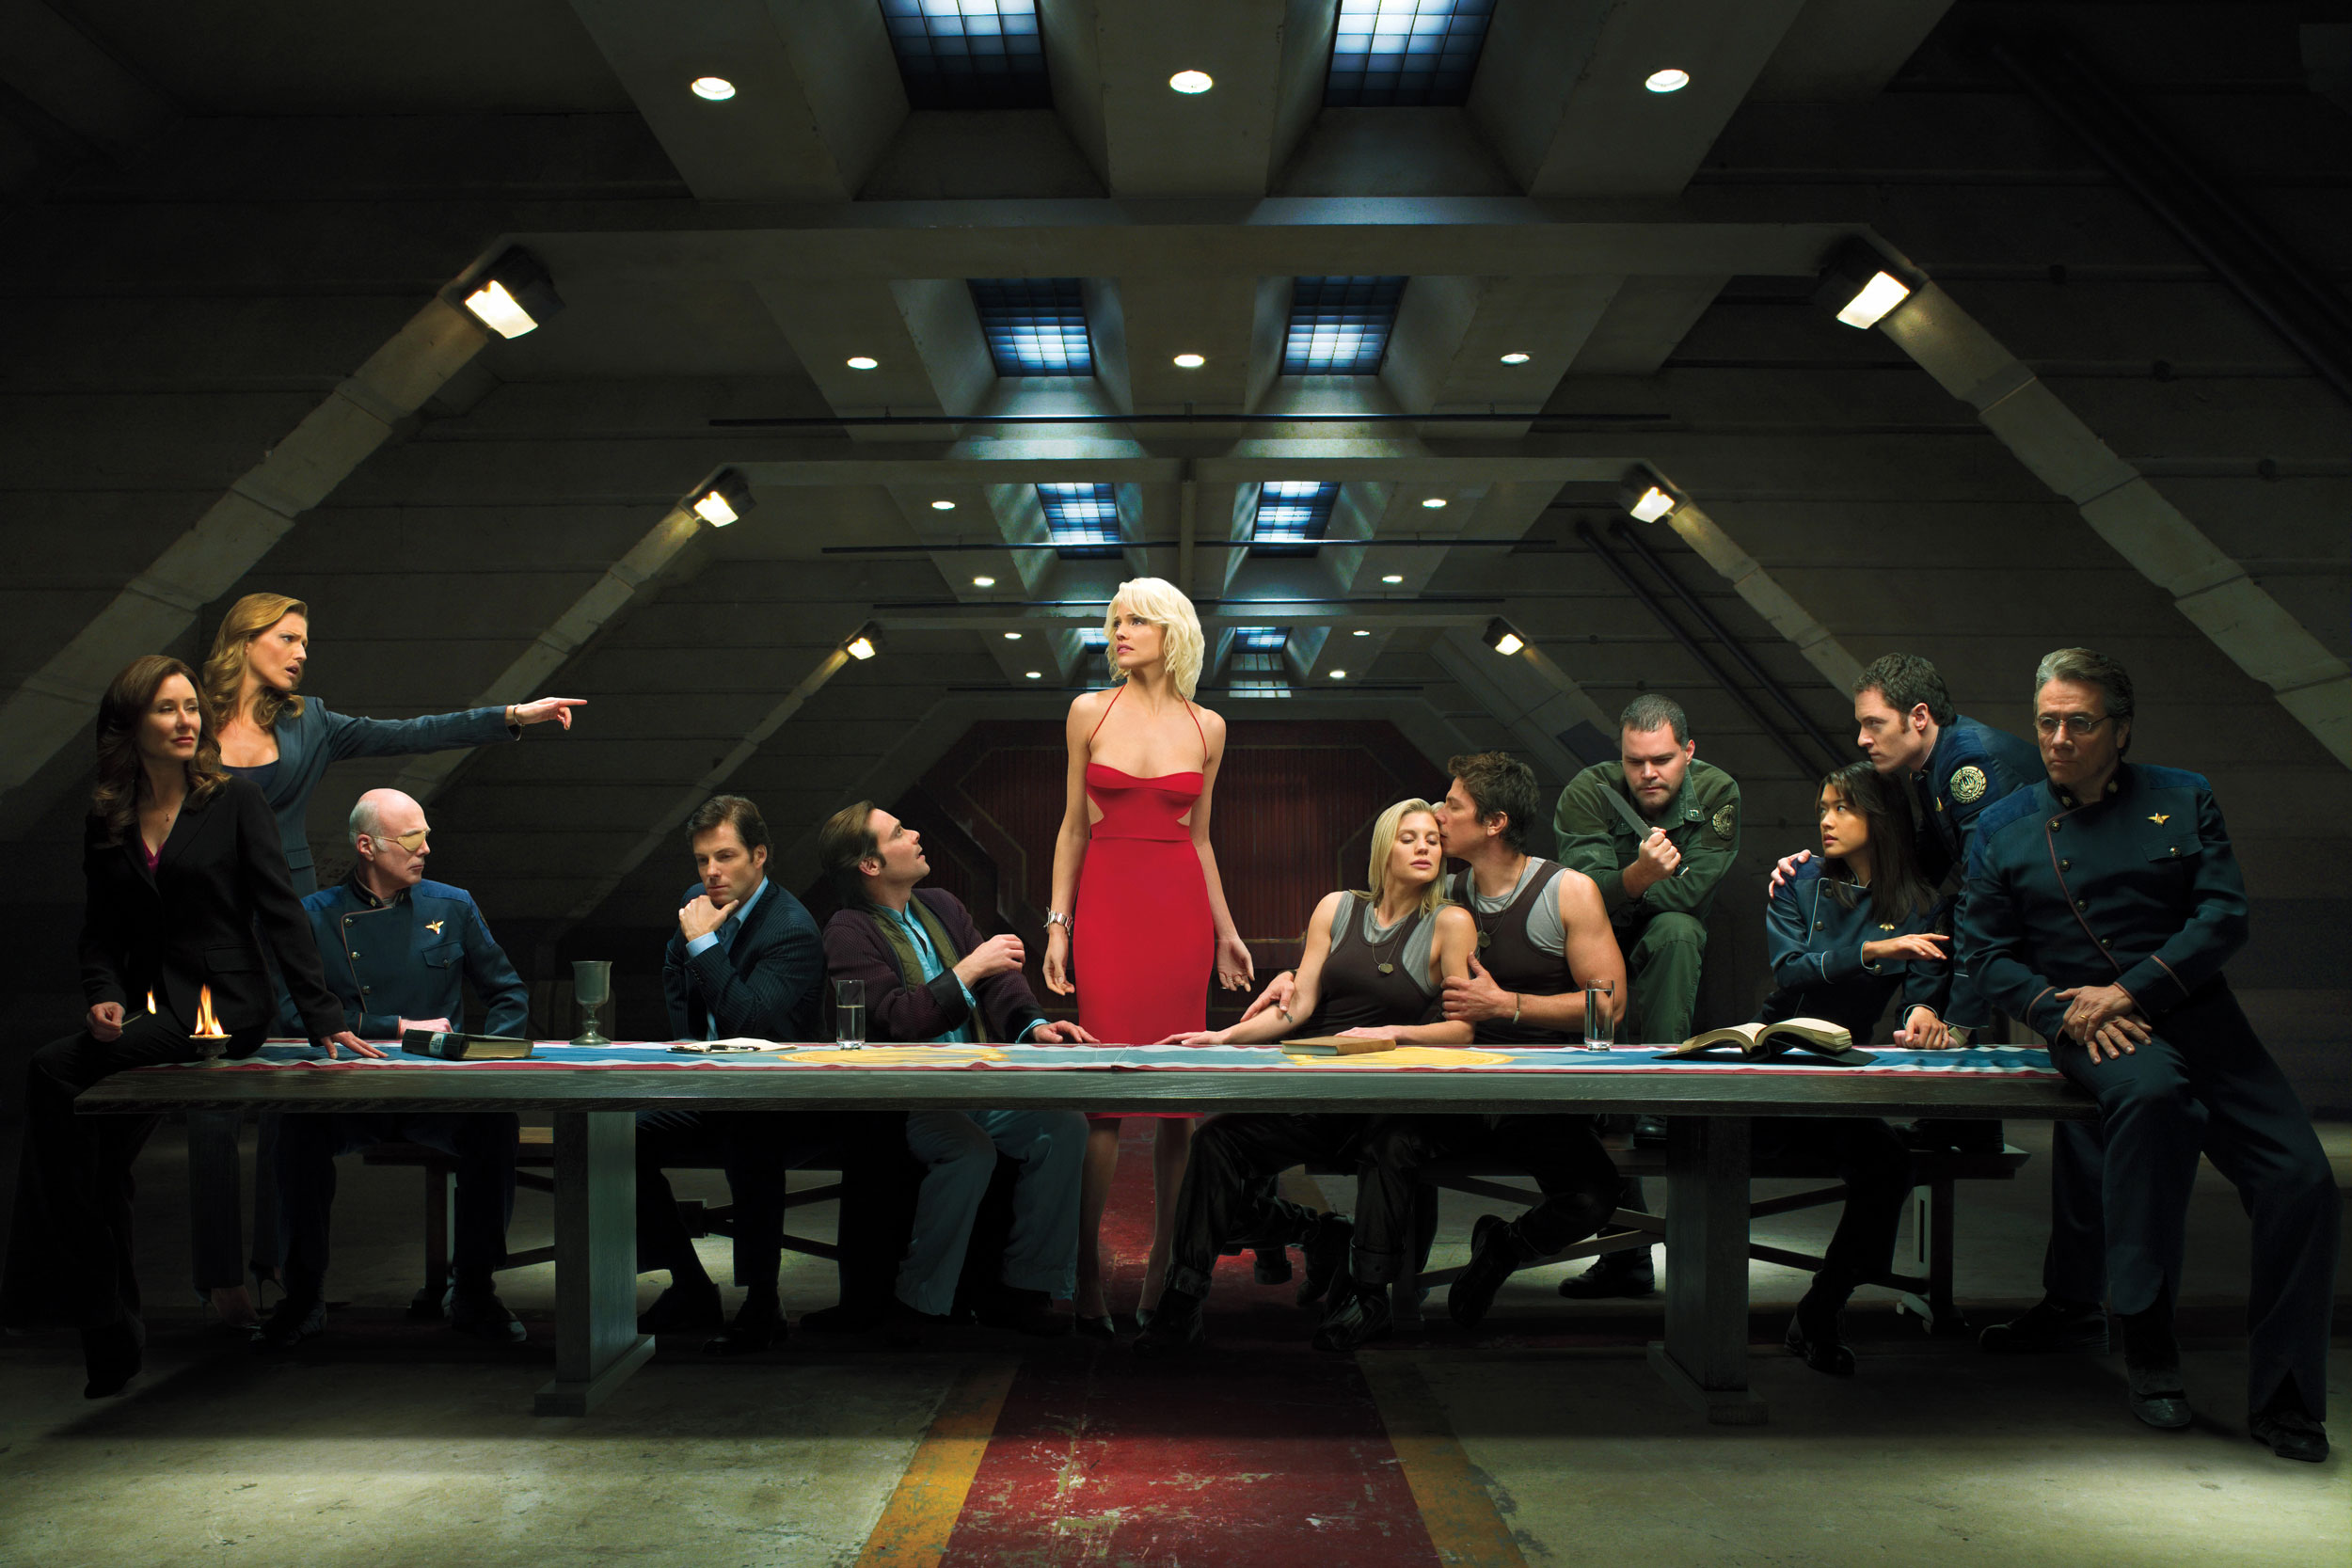 Battlestar Galactica reboot set for take-off with Westworld writer